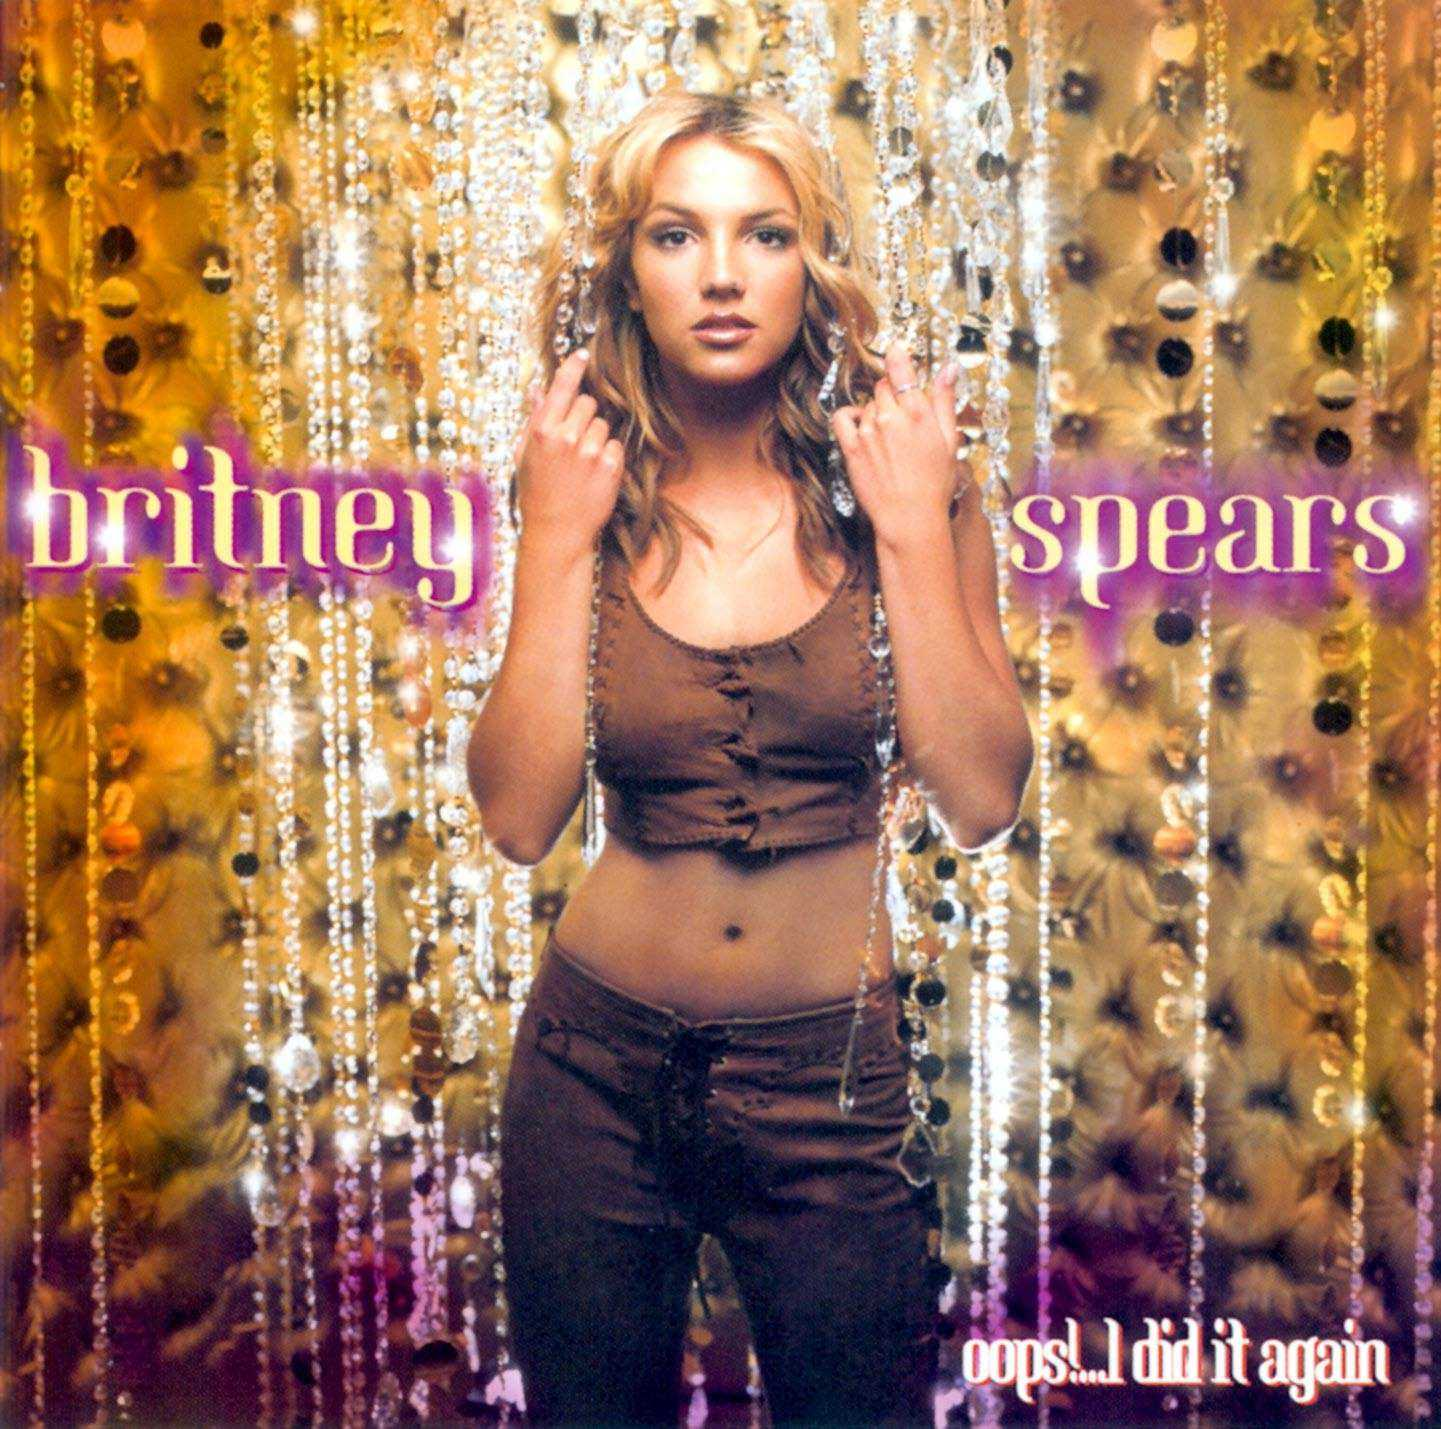 Oops' Britney Spears Does It Again This Time With Her Boys! | Britney Spears